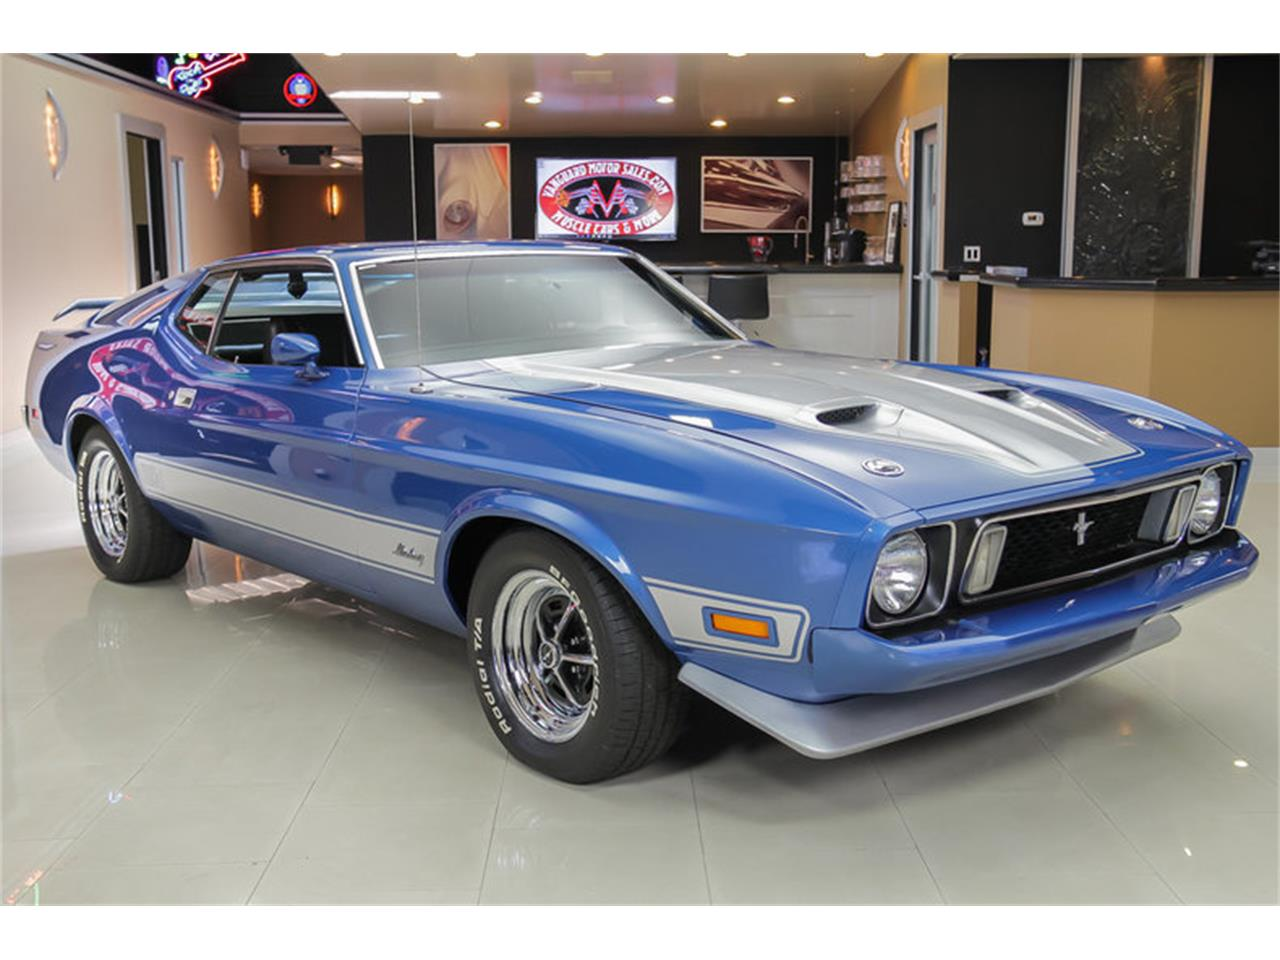 Large Picture of Classic '73 Ford Mustang Mach 1 Q Code located in Michigan - $34,900.00 - JDX1